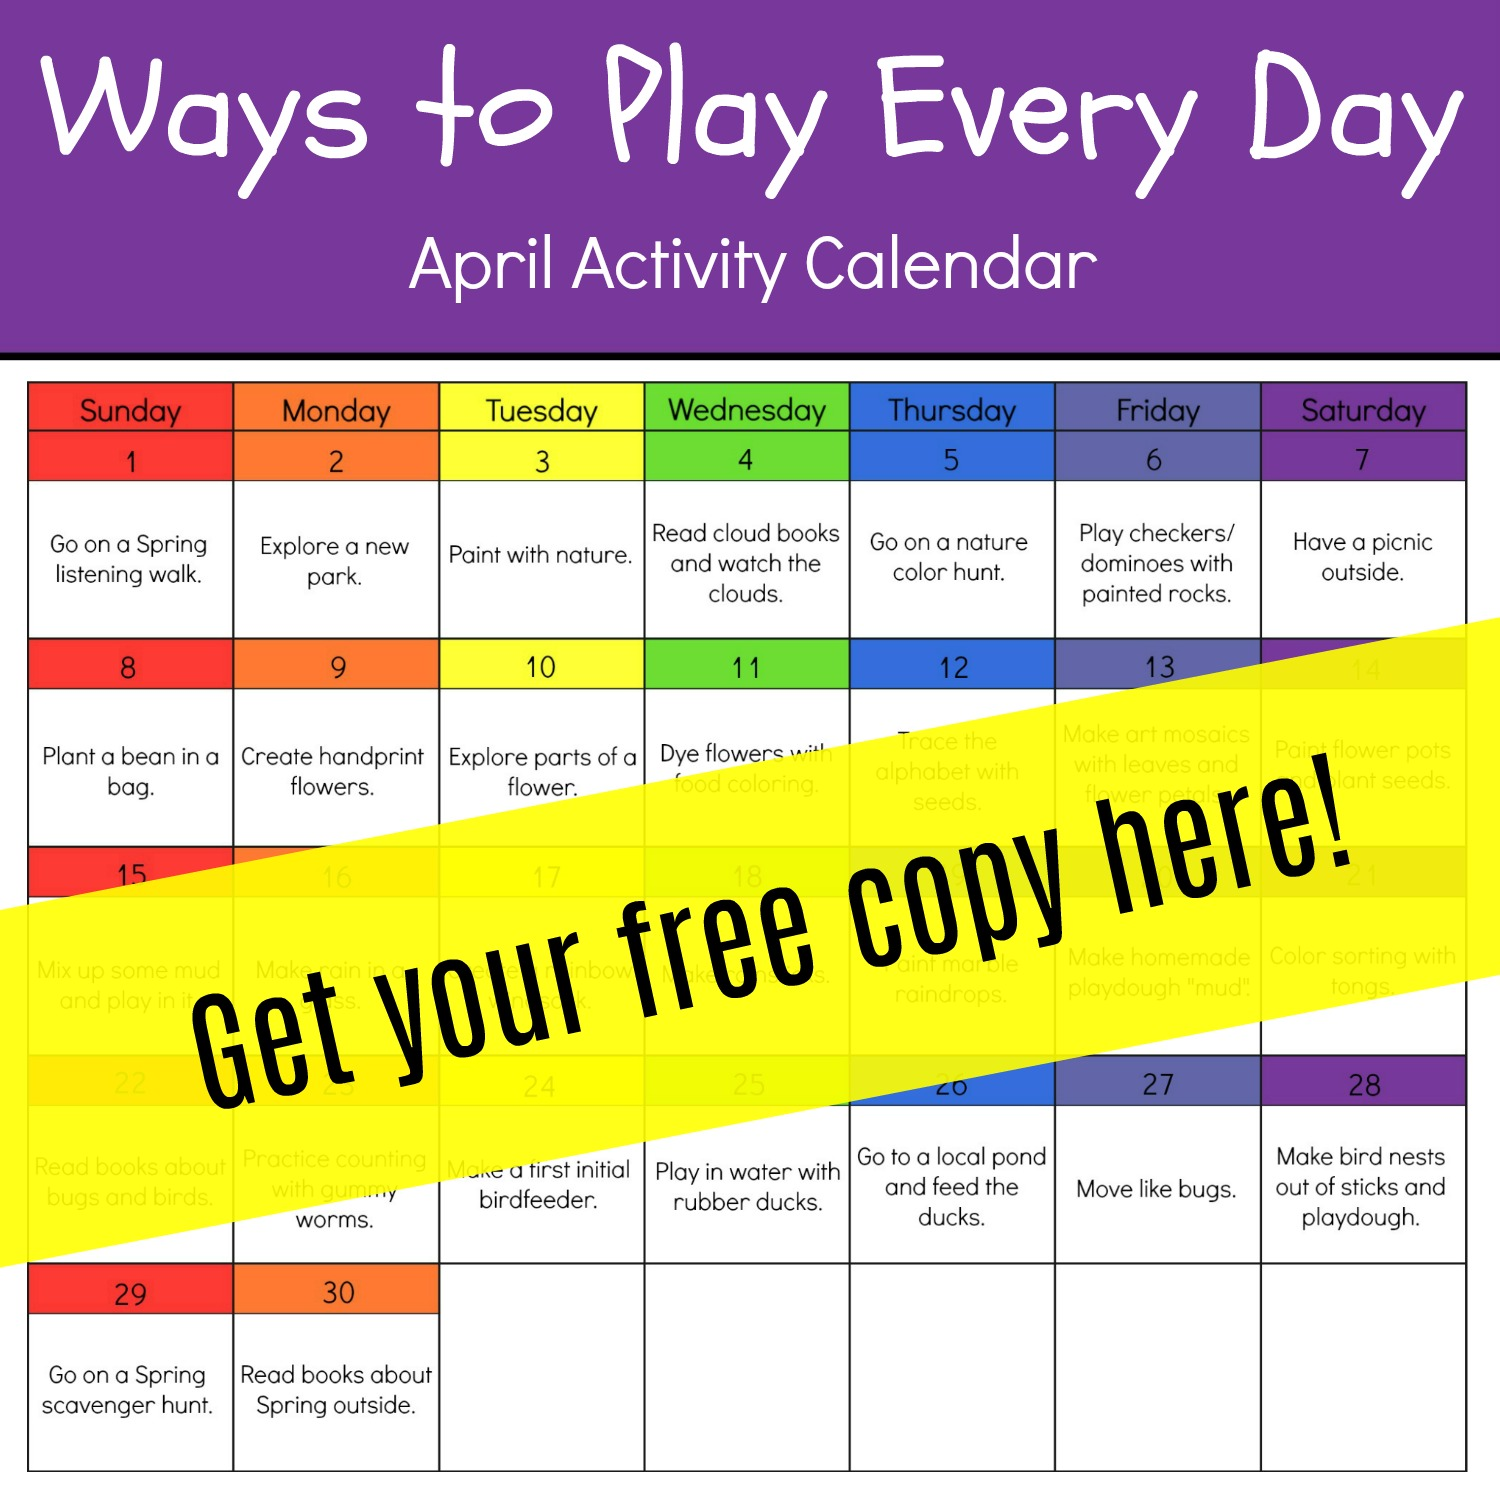 April Activity Calendar for Preschool